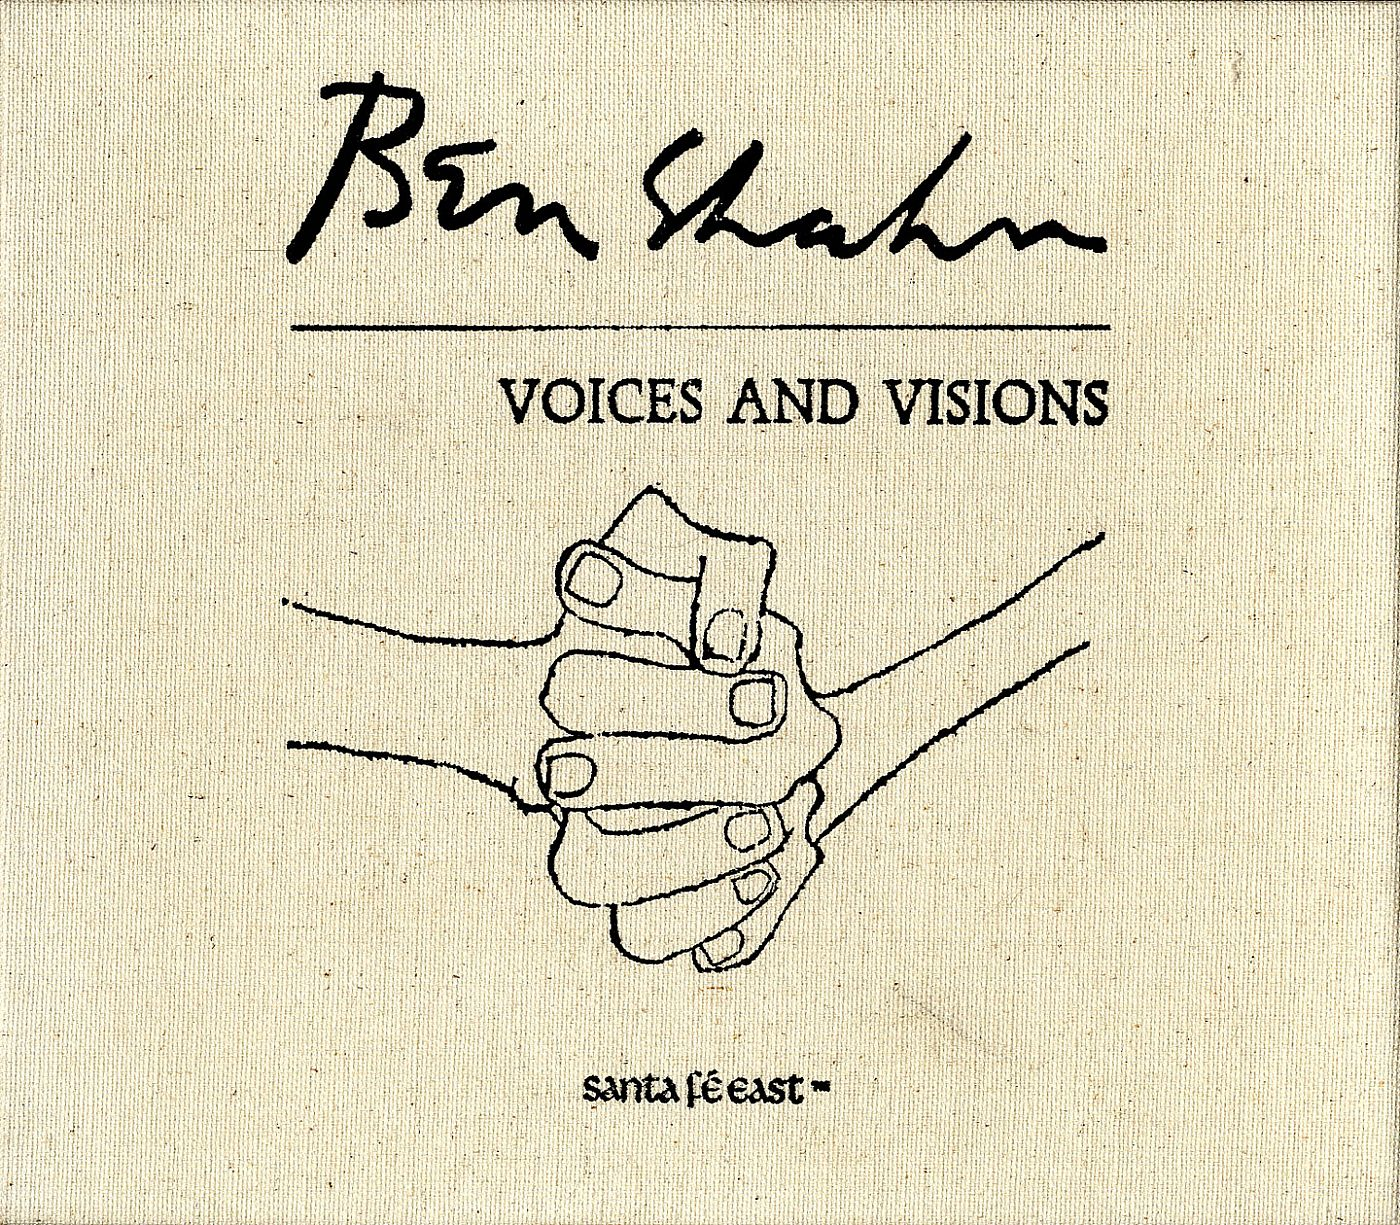 Ben Shahn: Voices and Visions, Limited Edition